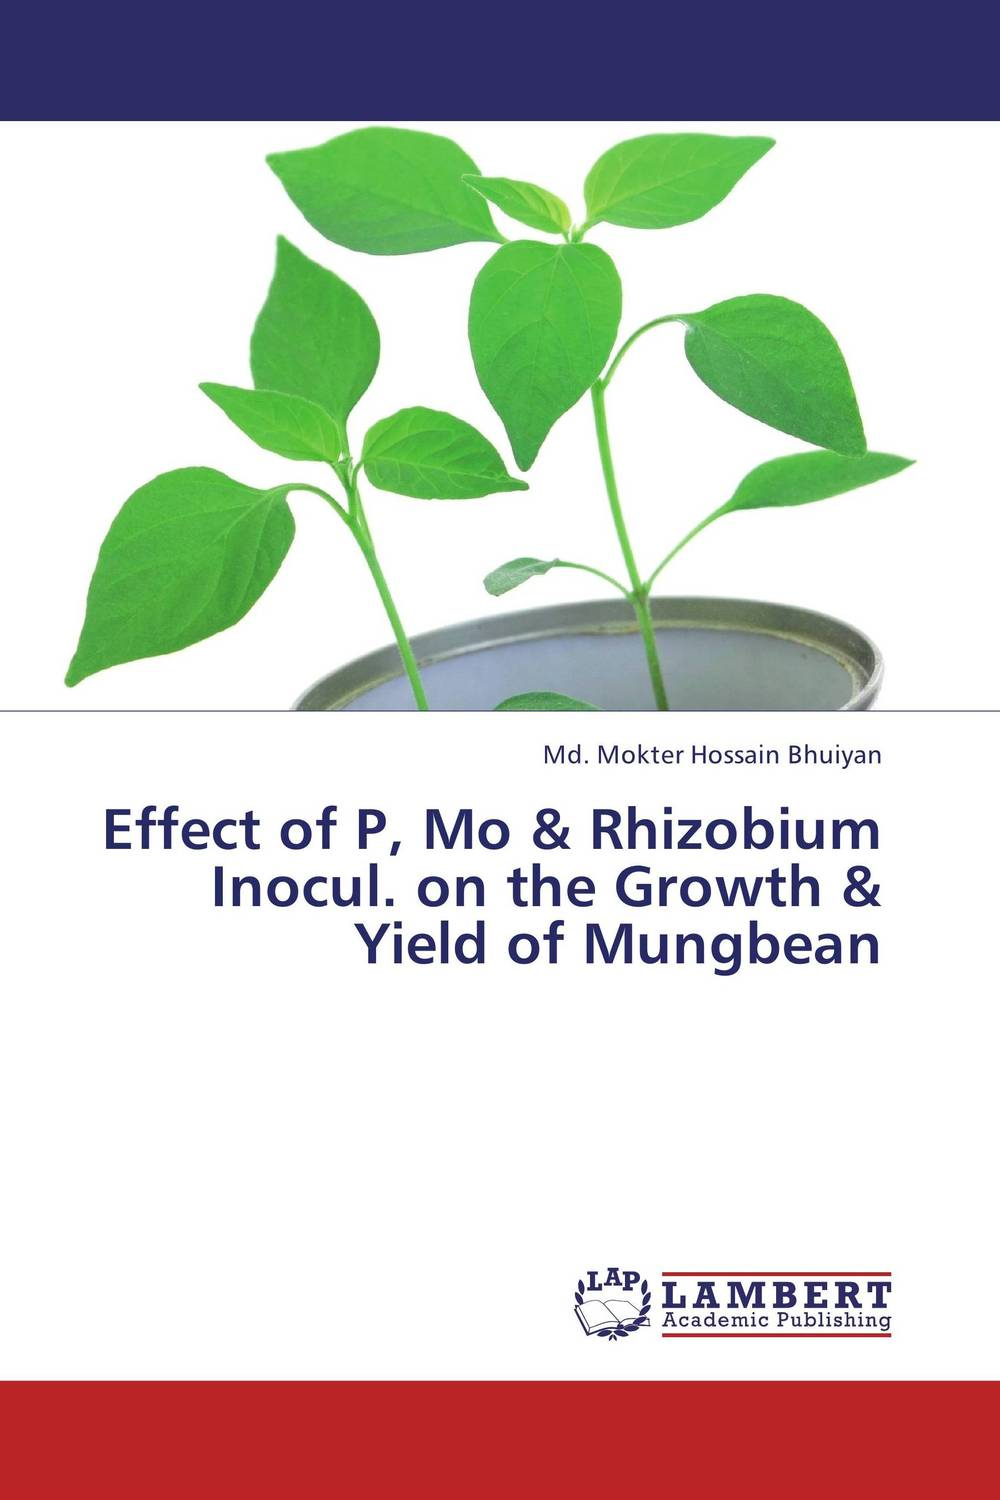 Effect of P, Mo & Rhizobium Inocul. on the Growth & Yield of Mungbean effect of beta carotene on growth and color of pterophyllum scalare